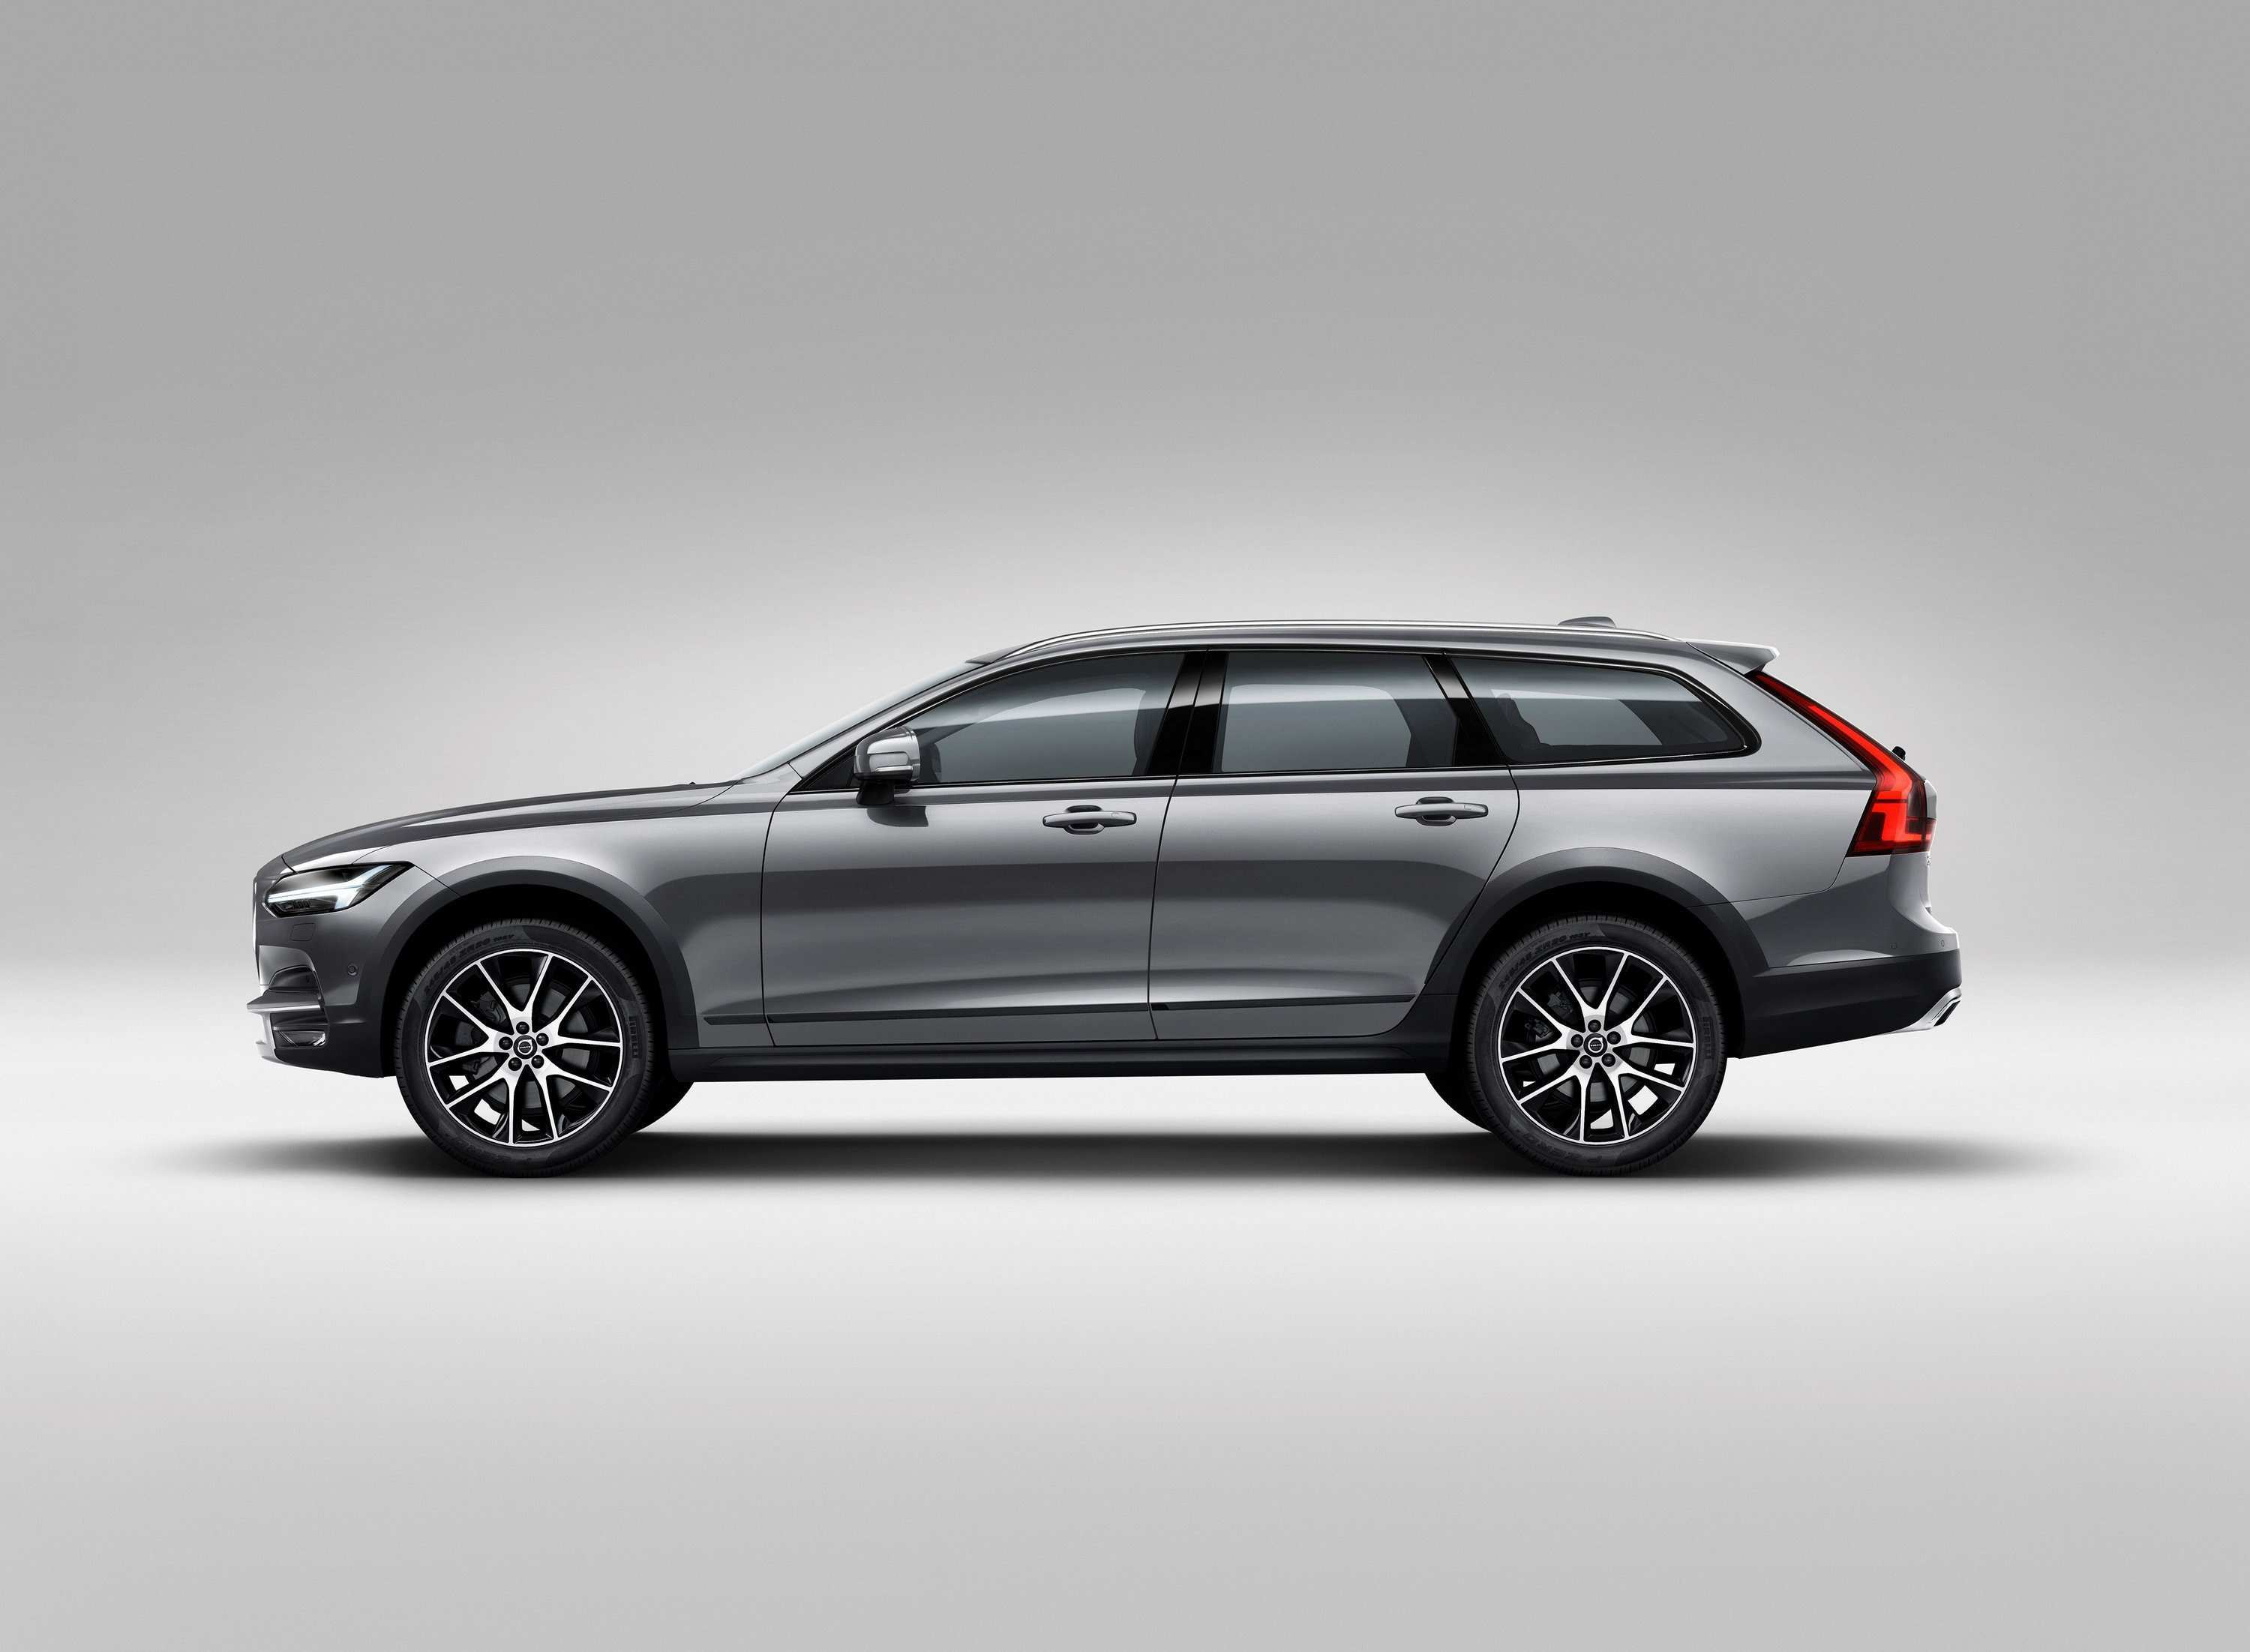 75 All New 2020 Volvo Xc70 Wagon Exterior